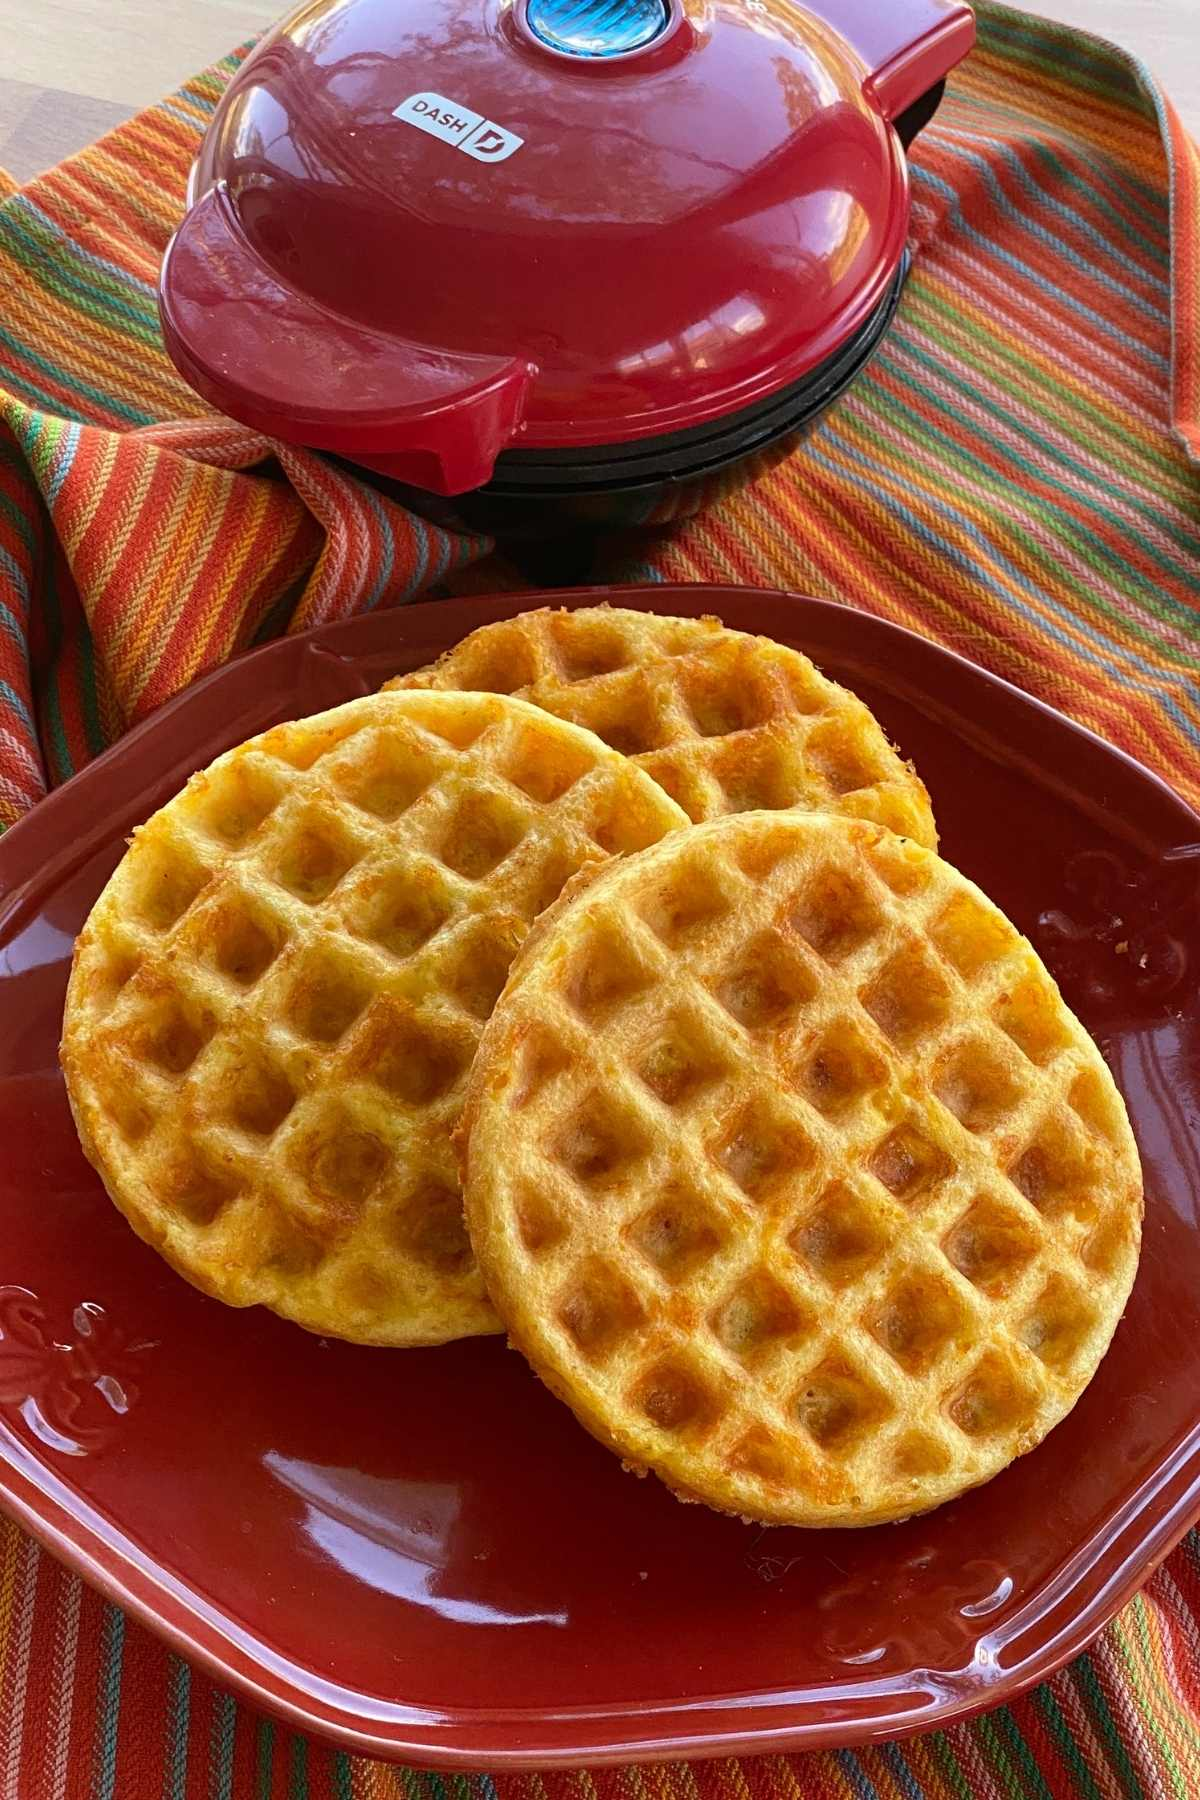 Easy keto chaffles on a plate with a dash mini waffle maker behind it.